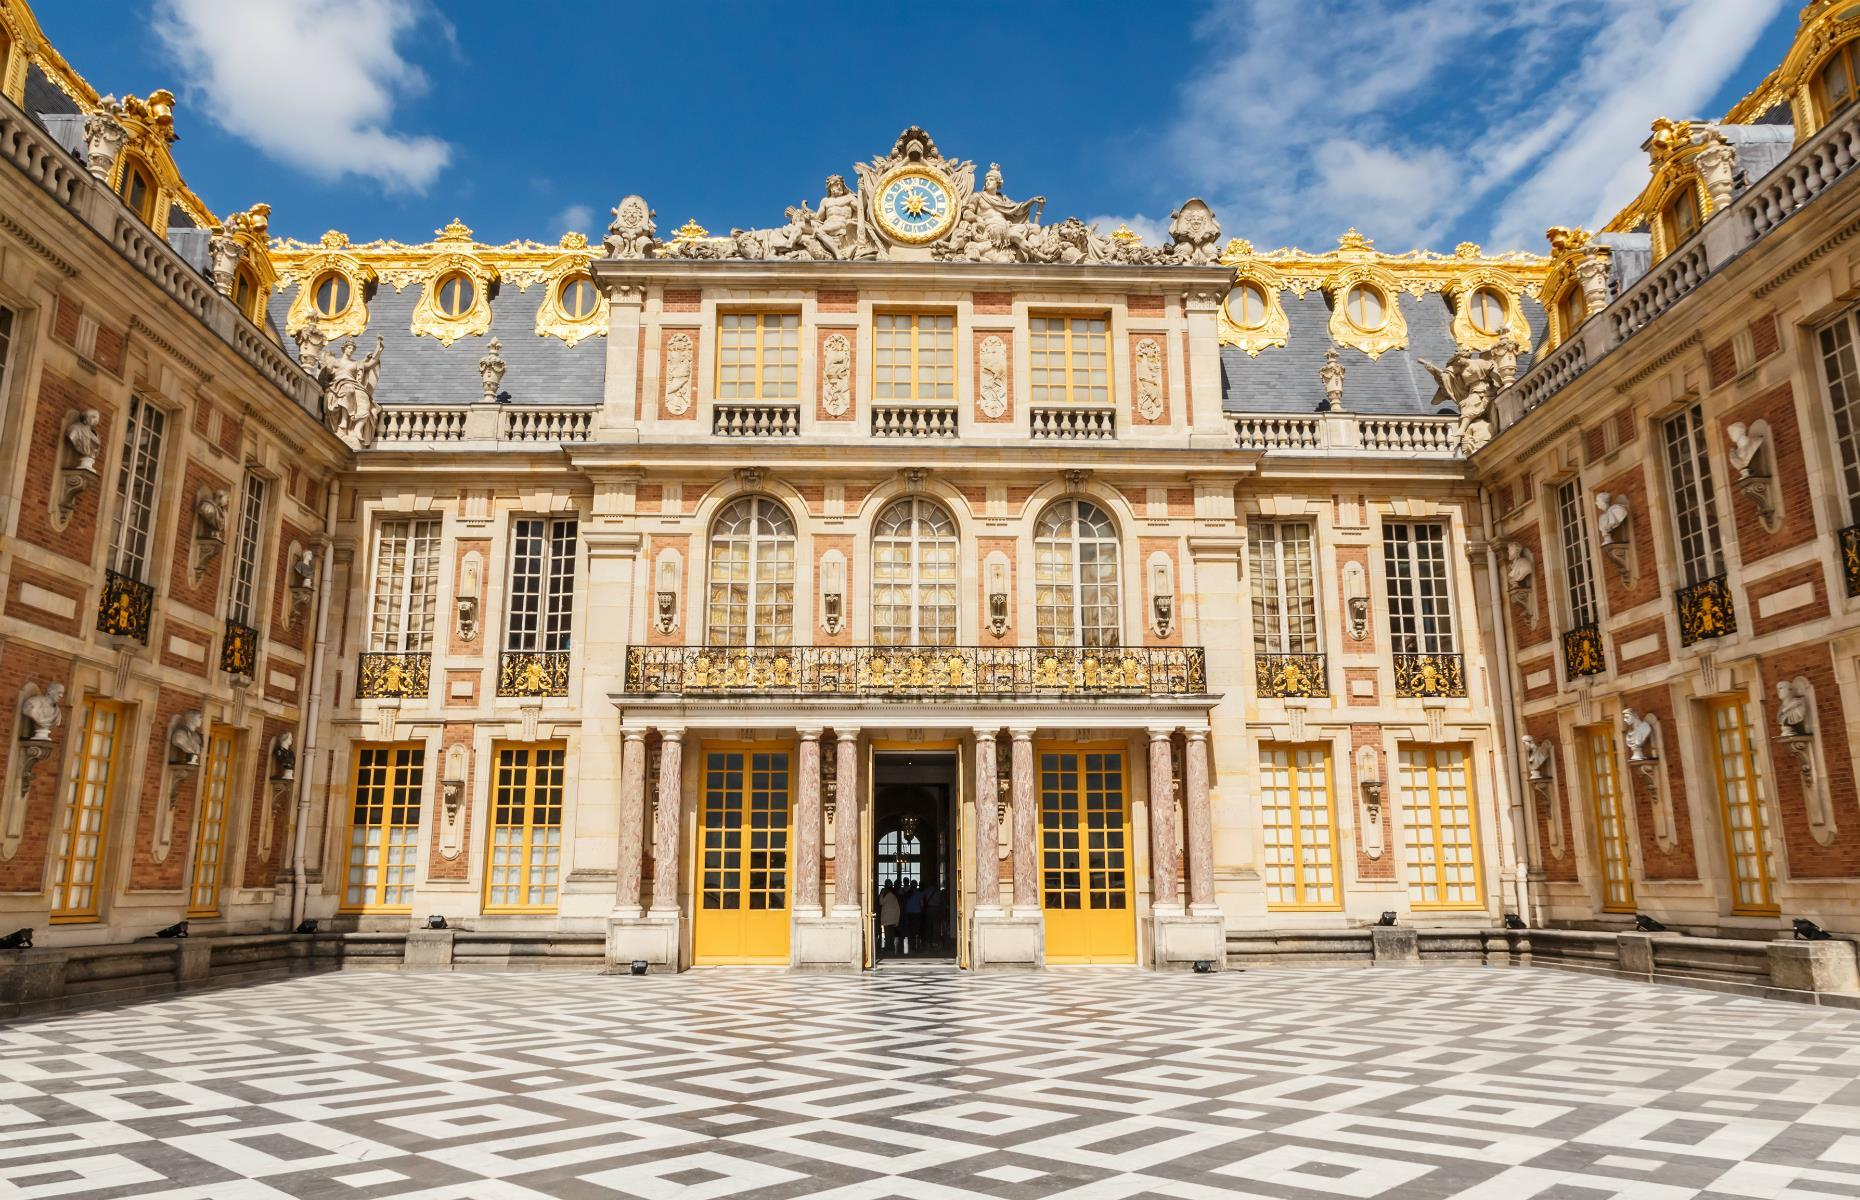 Slide 44 of 61: Famously the one-time residence of Marie Antoinette, the Palace of Versailles (or Château De Versailles) near Paris is well renowned for its opulence and extravagance. Constructed in the 17th century, Versailles served as the French royal family's home until the Revolution, which began in 1789.